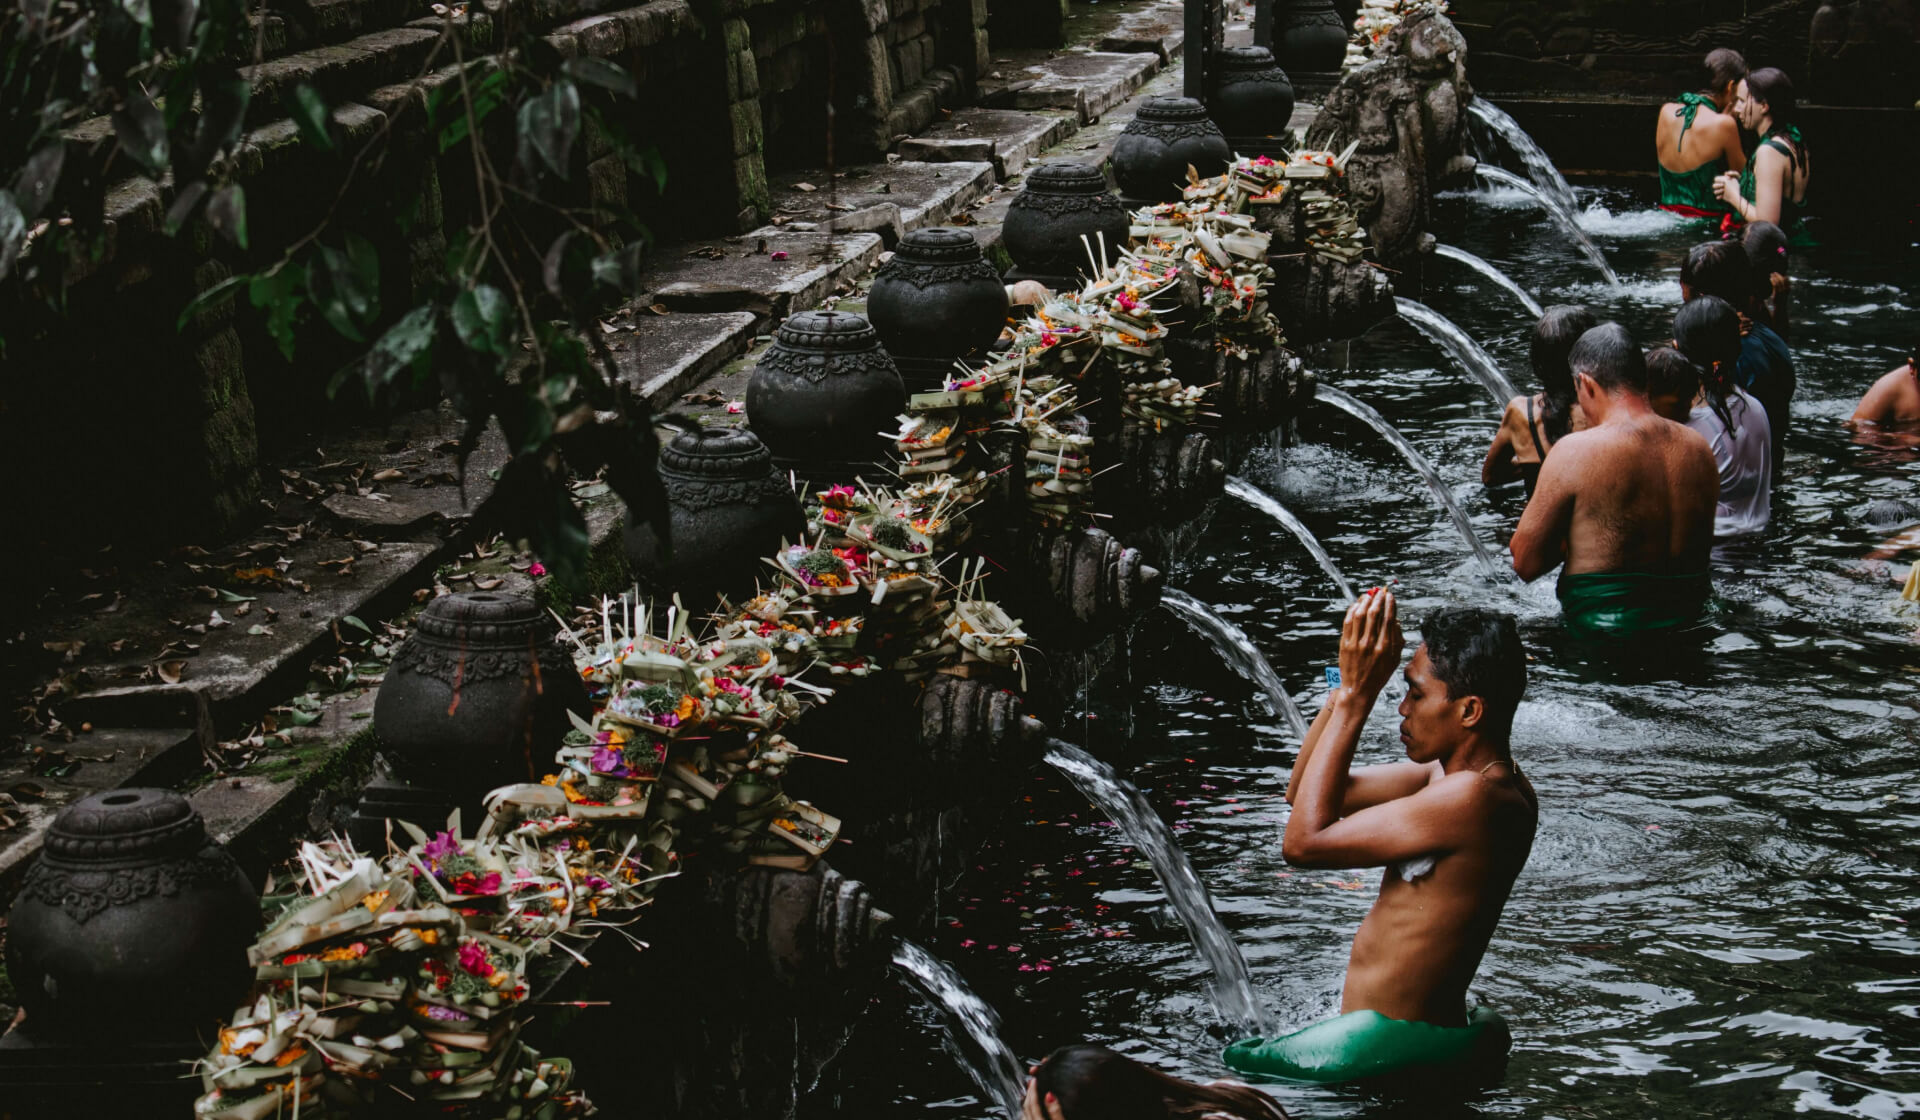 People bathing in the sacred water of the Balinese Tirta Empul Temple